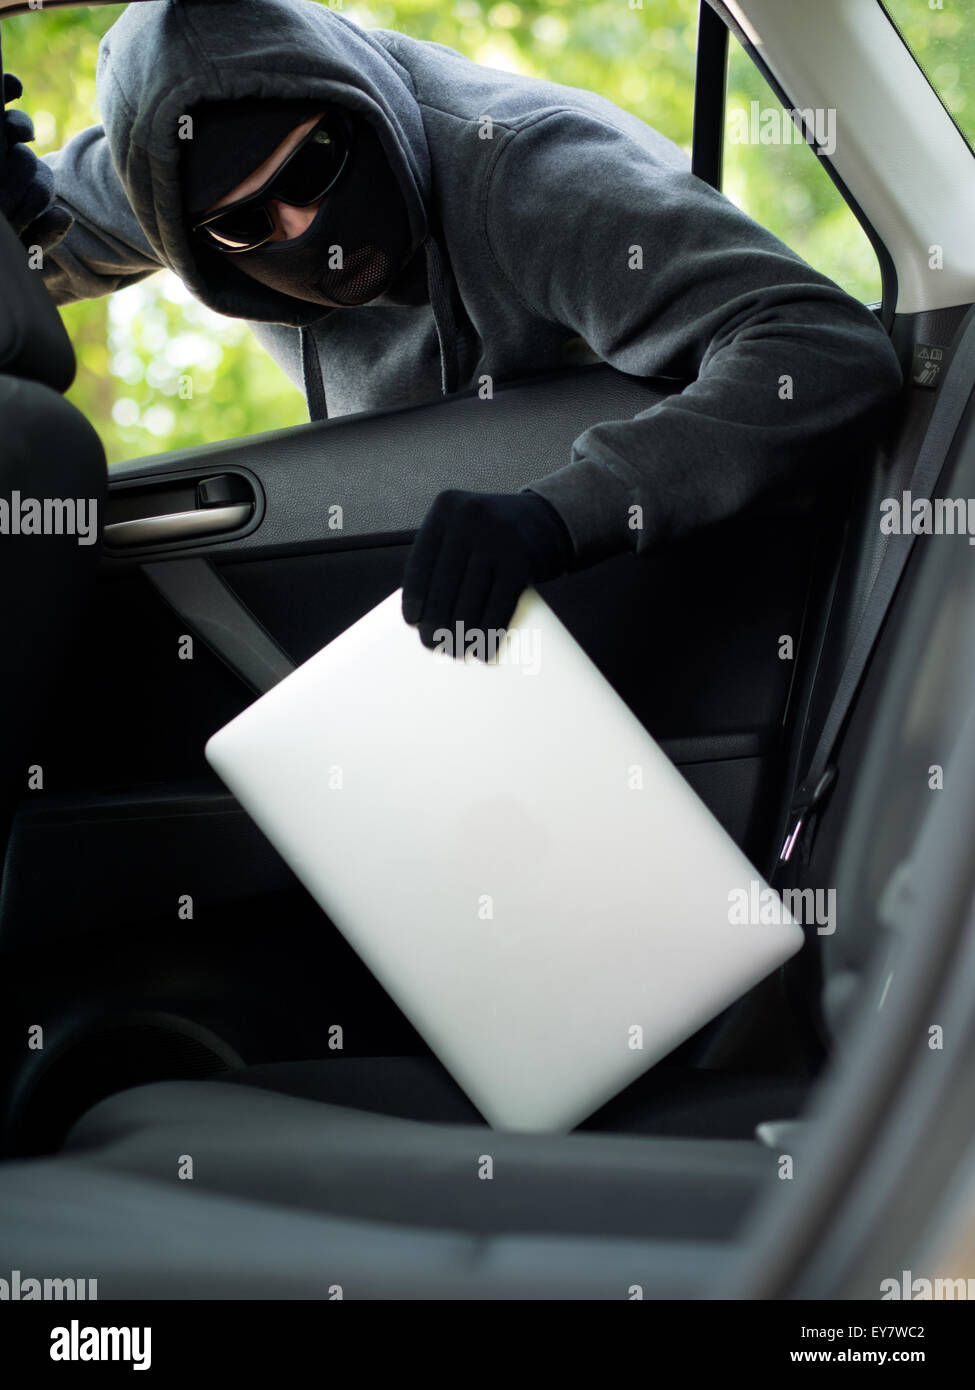 Car theft - a laptop being stolen through the window of an unoccupied car. - Stock Image